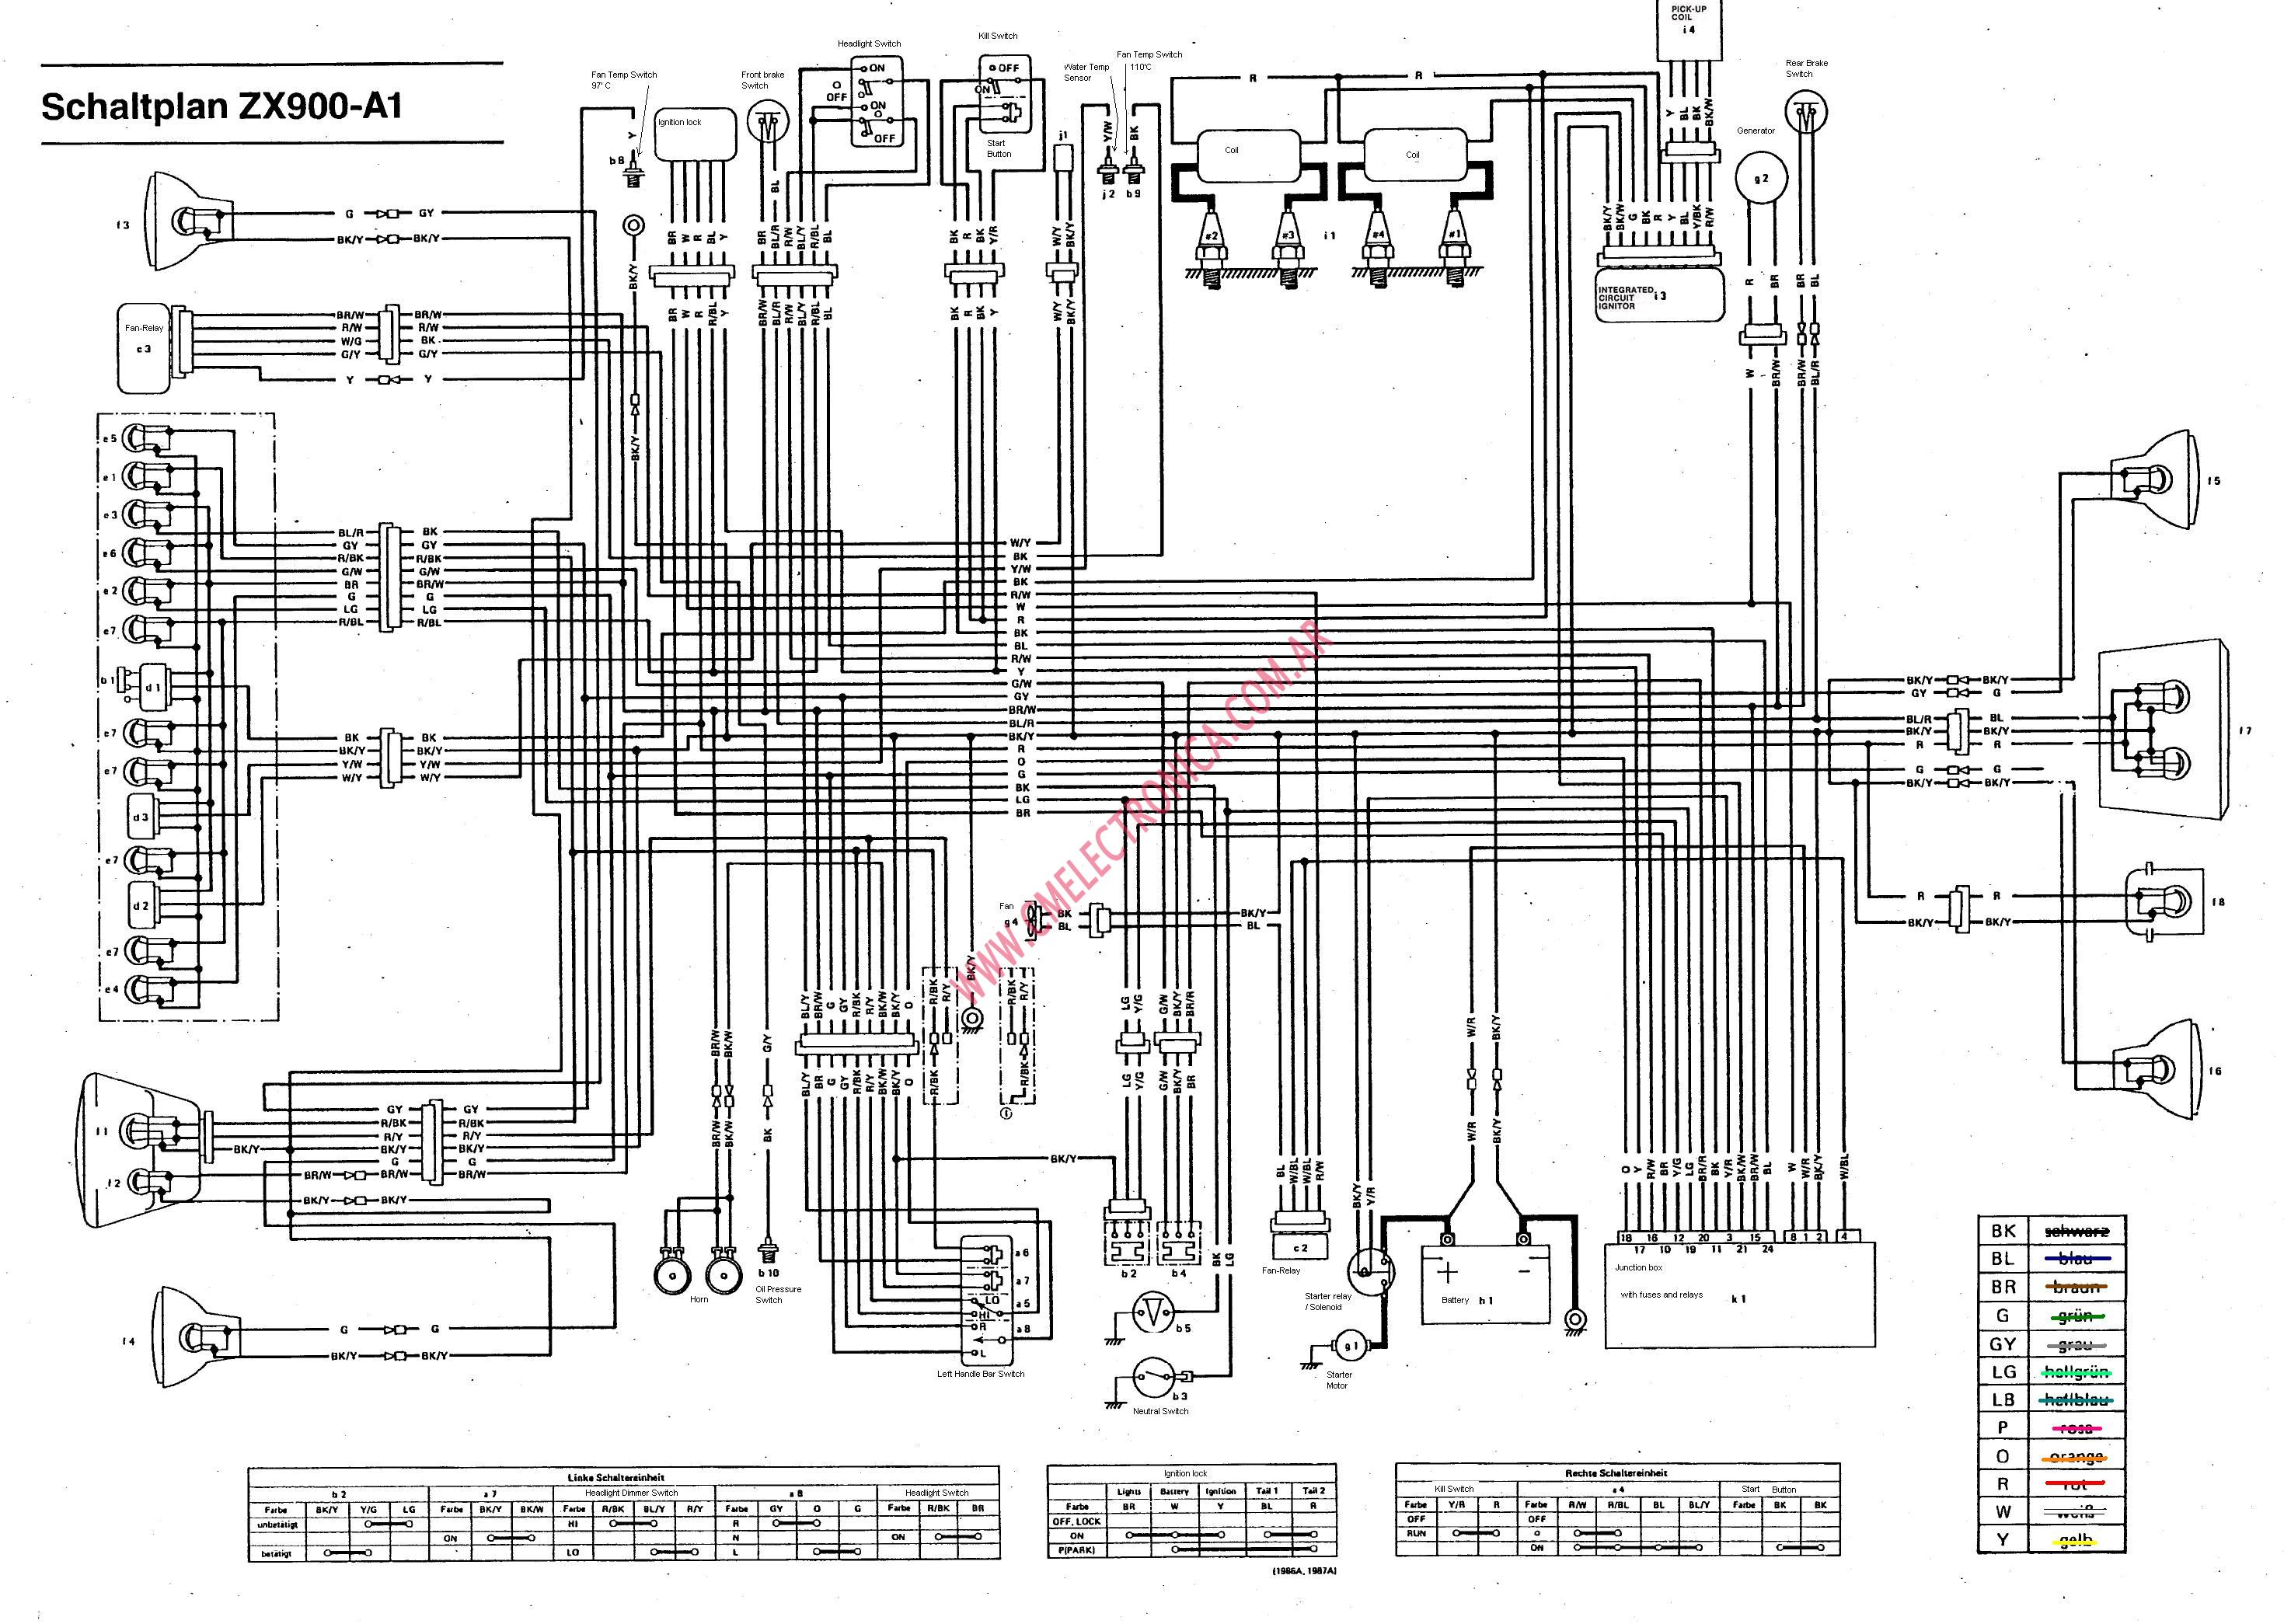 Wiring Diagram For Zxr 400 Knob And Tube Best Of Kawasaki Mule Schematic 1995 900 Zxi Ignition Schematics Rh Seniorlivinguniversity Co